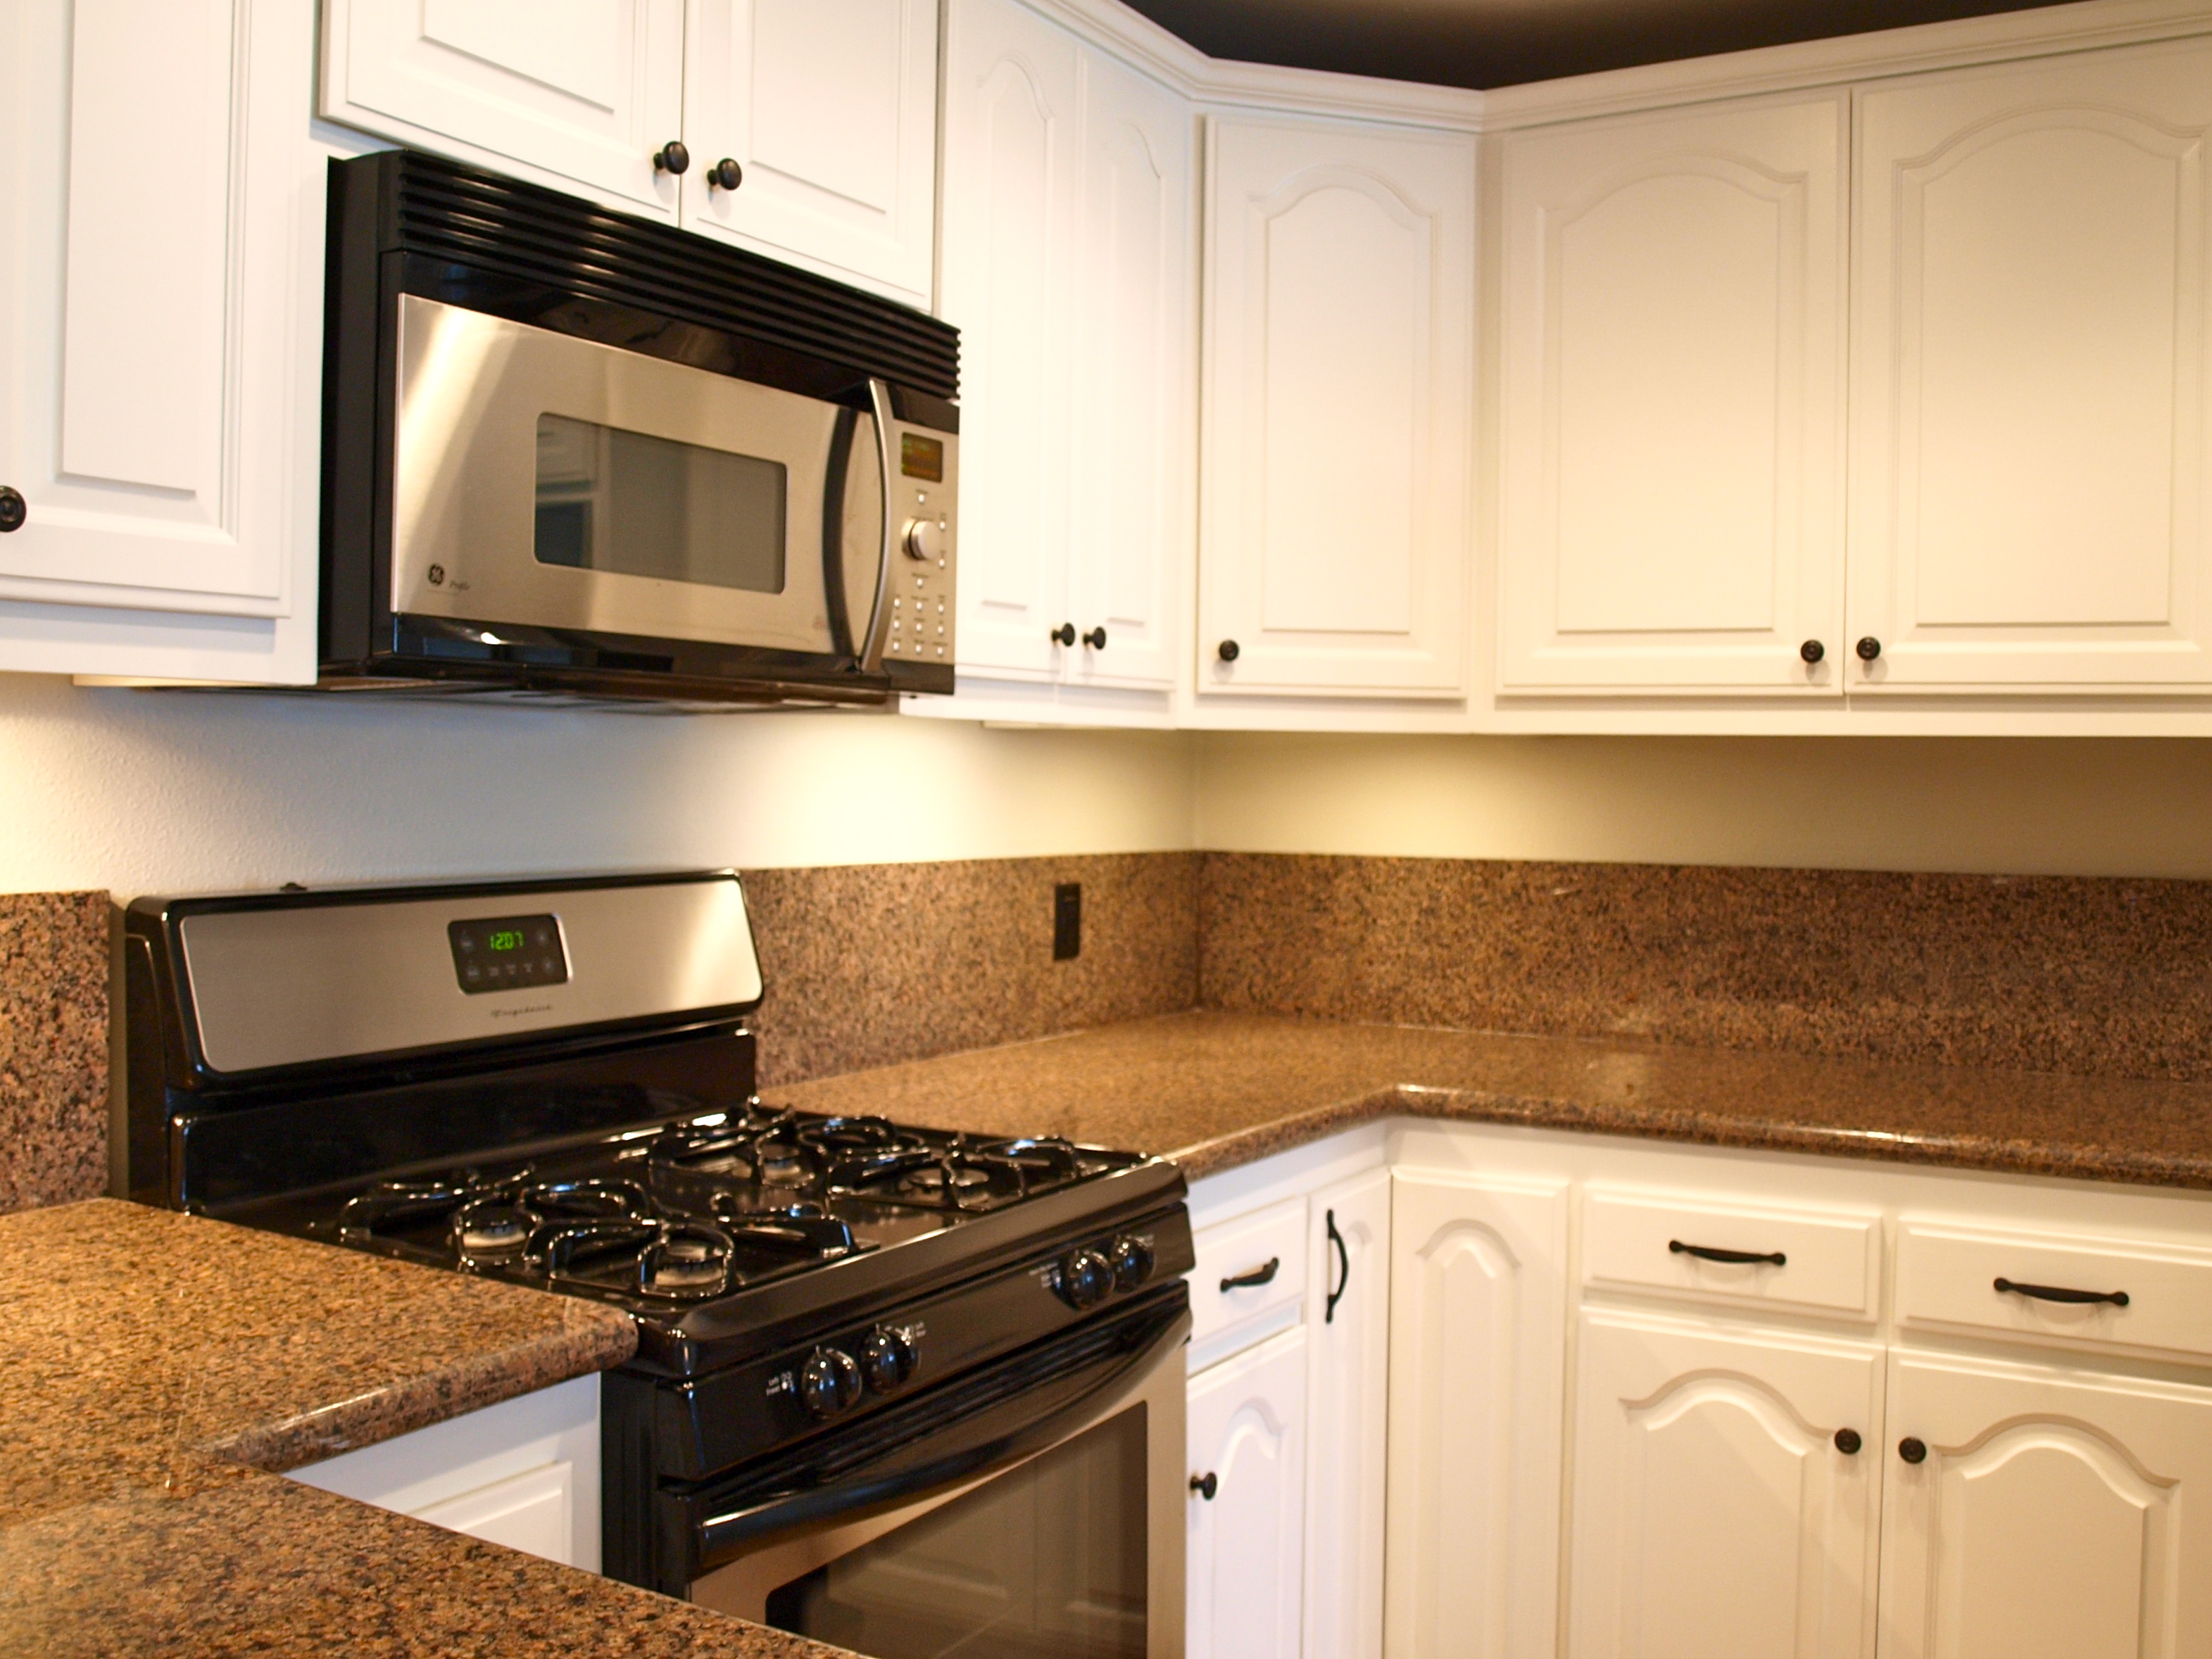 rubbed bronze kitchen appliances such as gas stove unit and oven brown